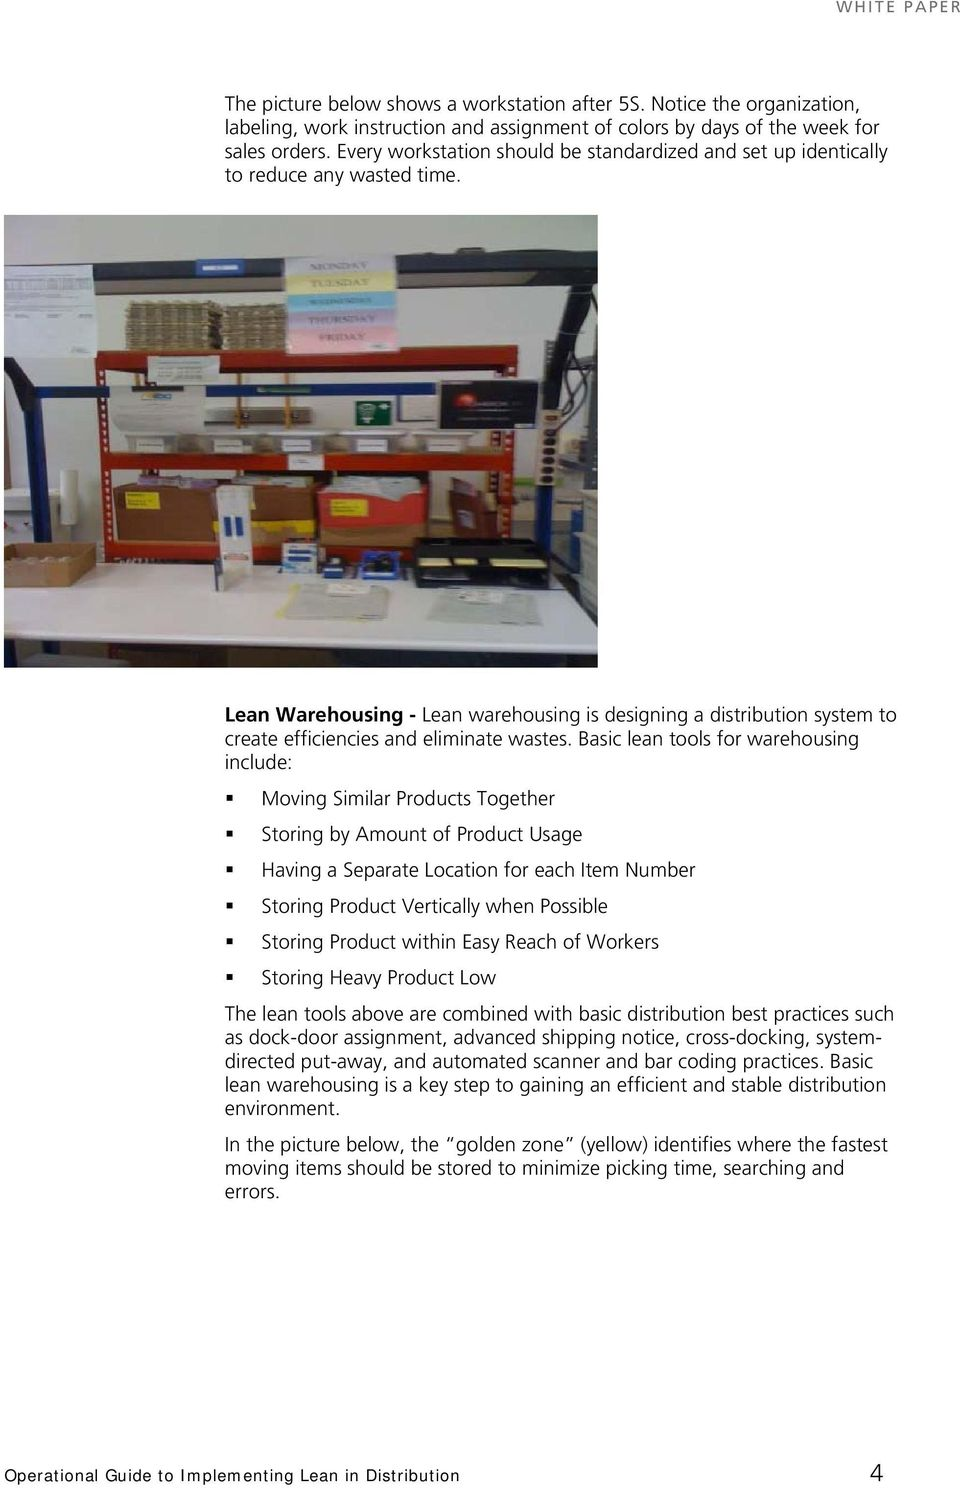 Lean Warehousing - Lean warehousing is designing a distribution system to create efficiencies and eliminate wastes.